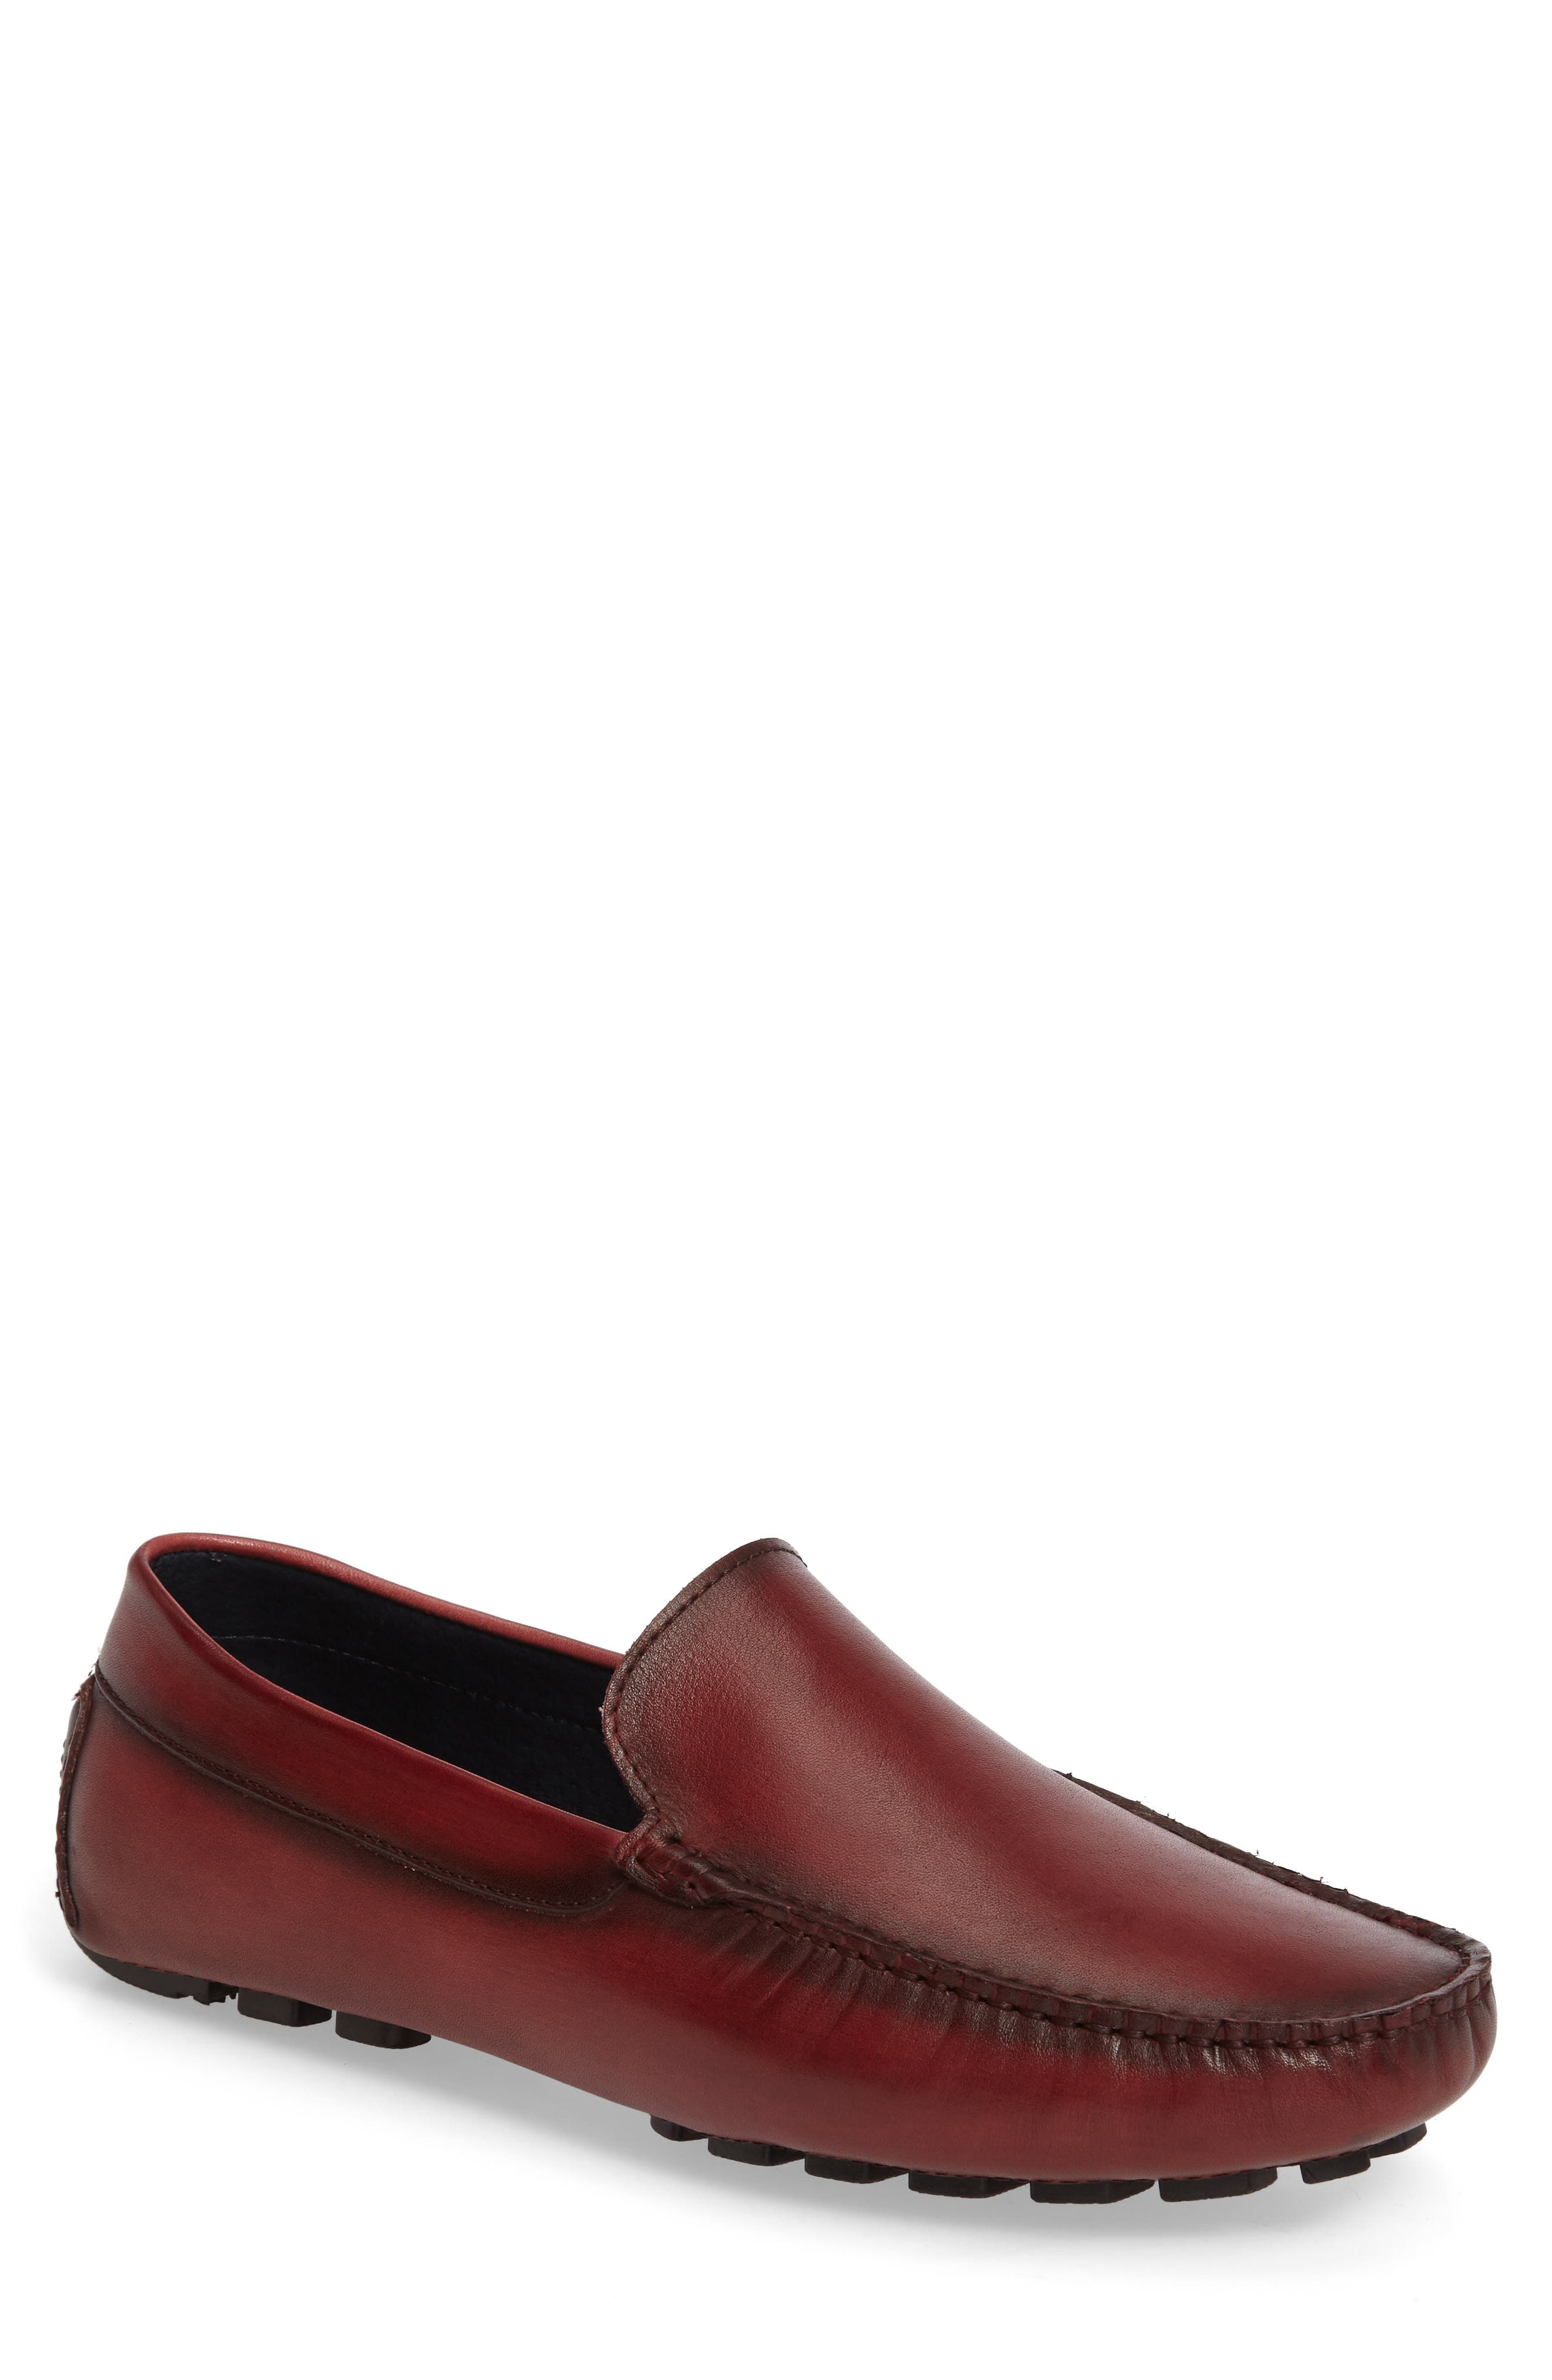 Matisse Driving Moccasin,                             Main thumbnail 1, color,                             Red Leather